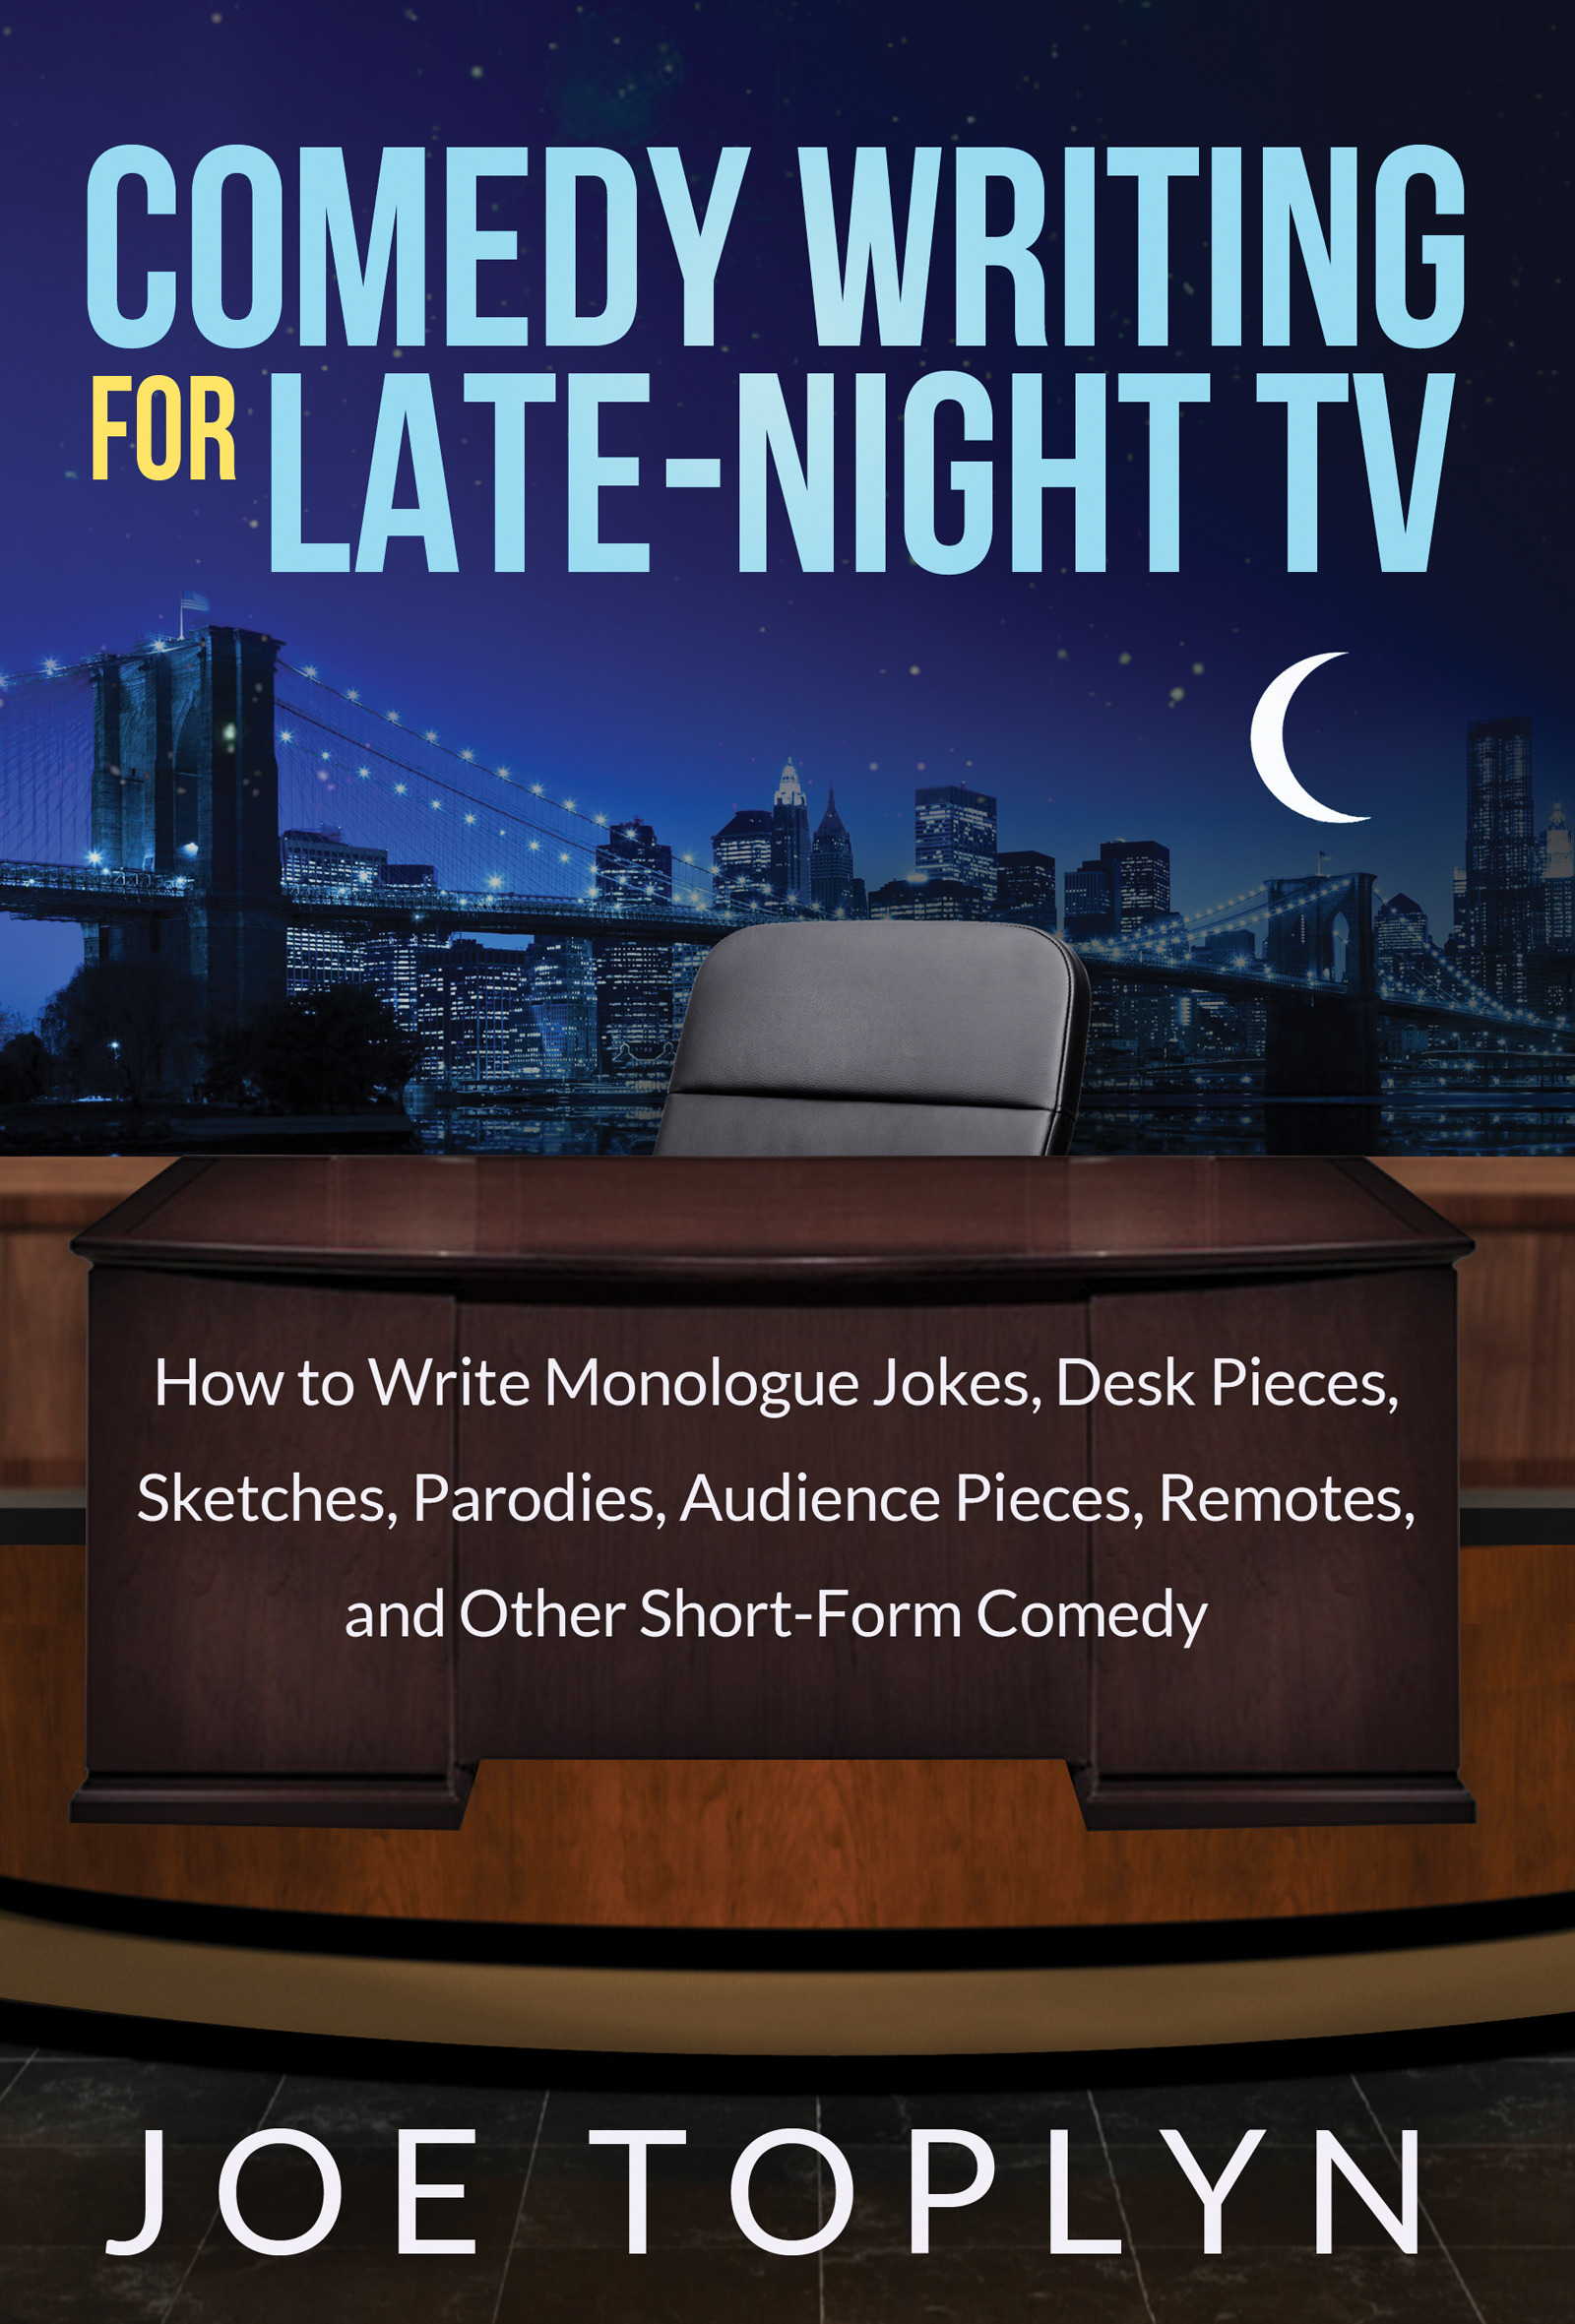 american television comedies essay At first glance, this show appears to be little more than a dark comedy with monster-like characters but it is actually a satirical inversion of an ideal family that intentionally breaks the mold.